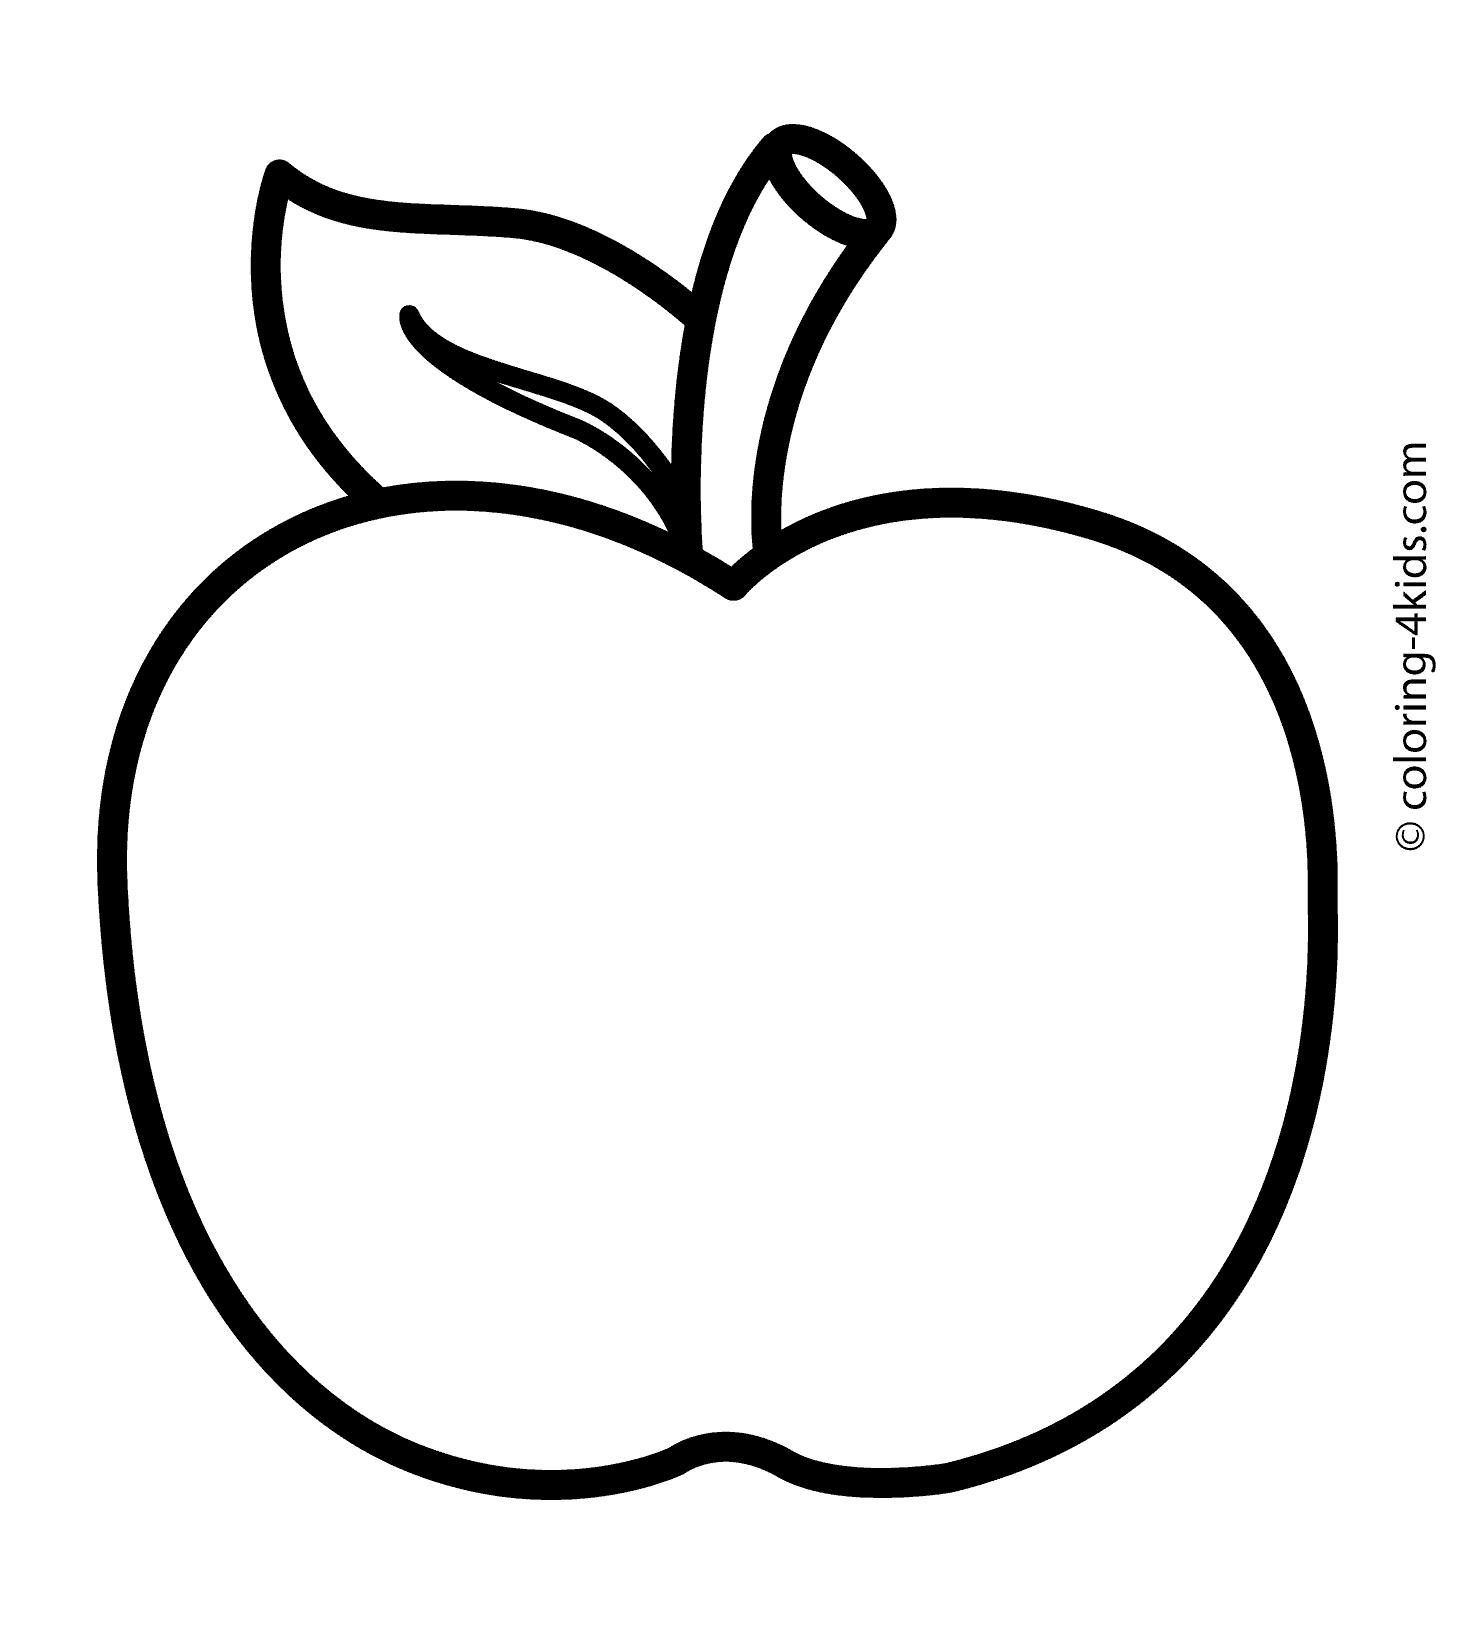 apples coloring pages free printable apple coloring pages for kids pages apples coloring